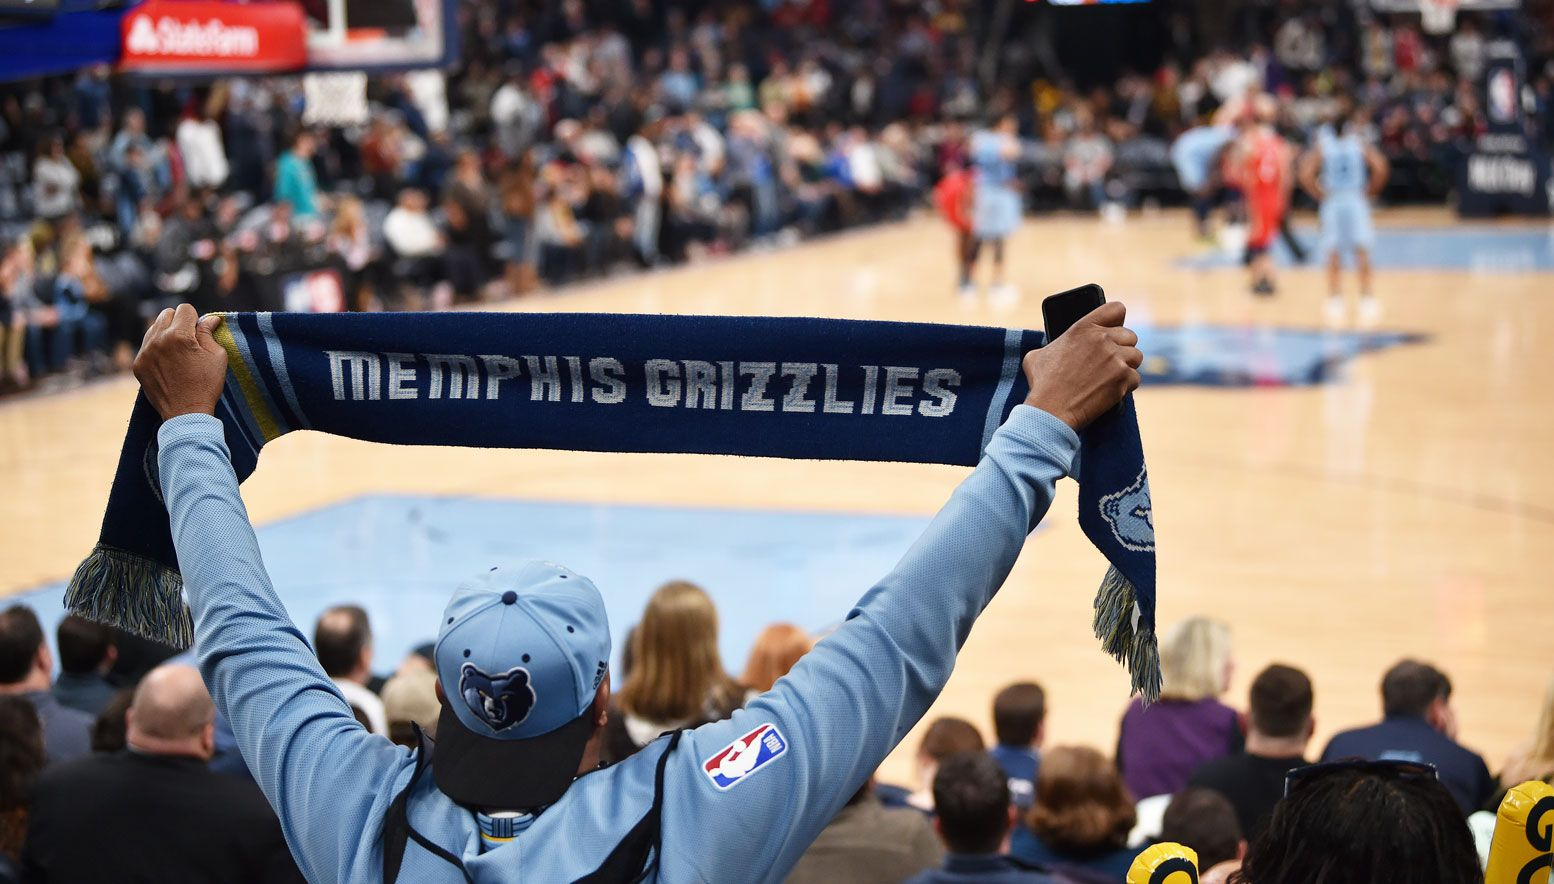 Grizzlies fan holding up a scarf